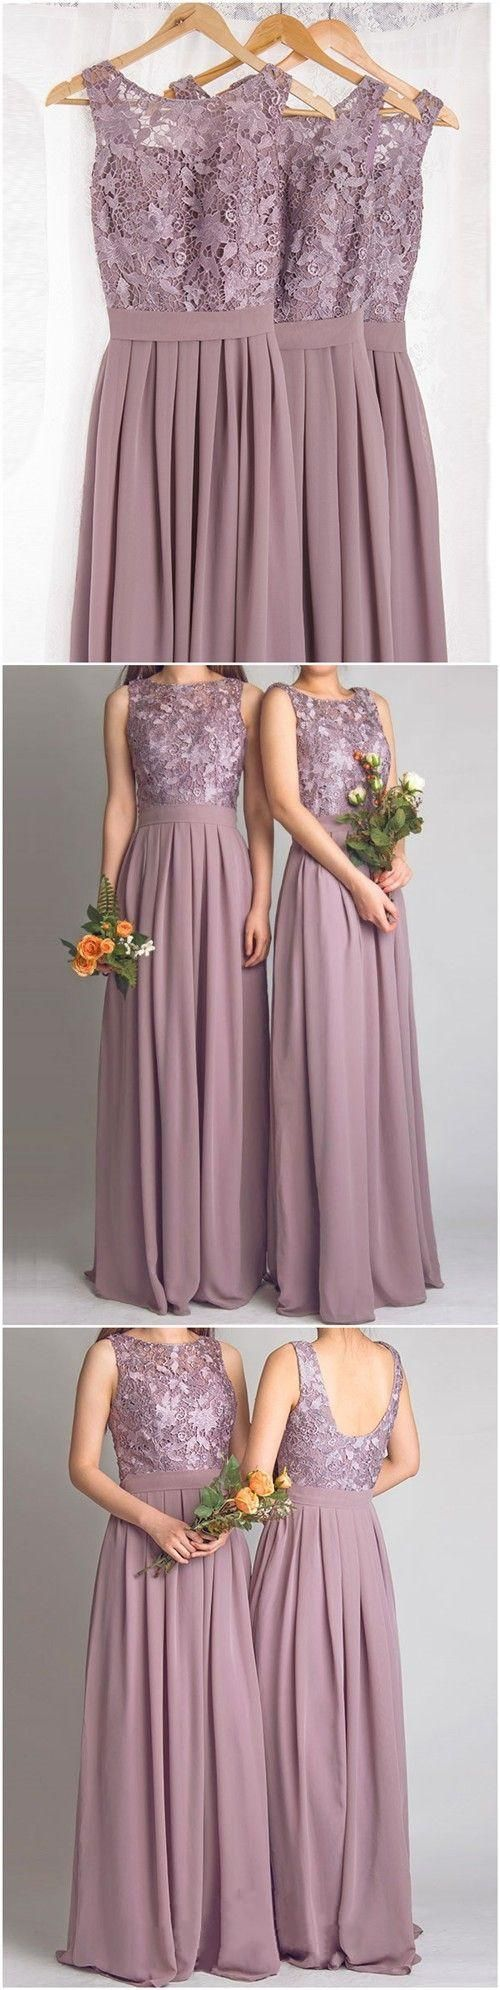 Dusty mauve bridesmaid dresses for wedding with applique pleat jewel